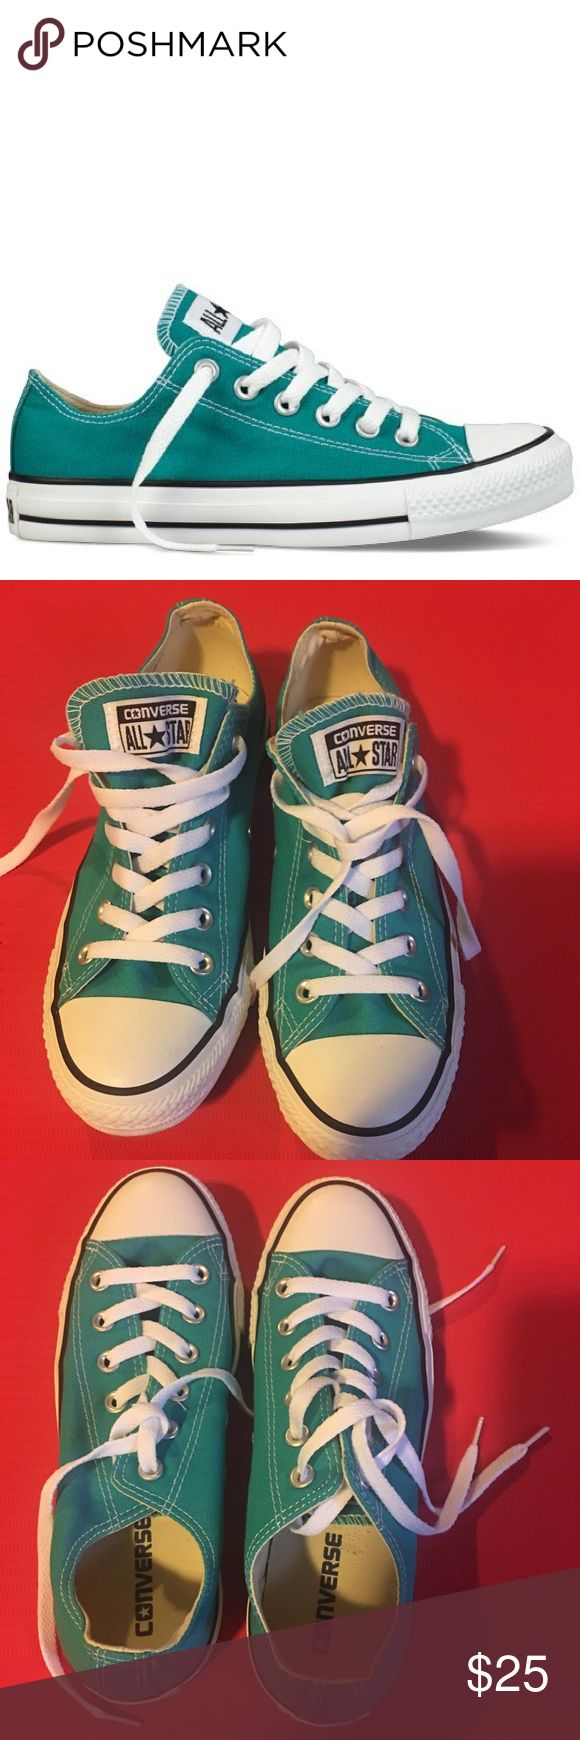 Converse Chuck Taylors Low Tops Turquoise Converse Chuck Taylors Low Tops. Size 8 Converse Shoes Sneakers